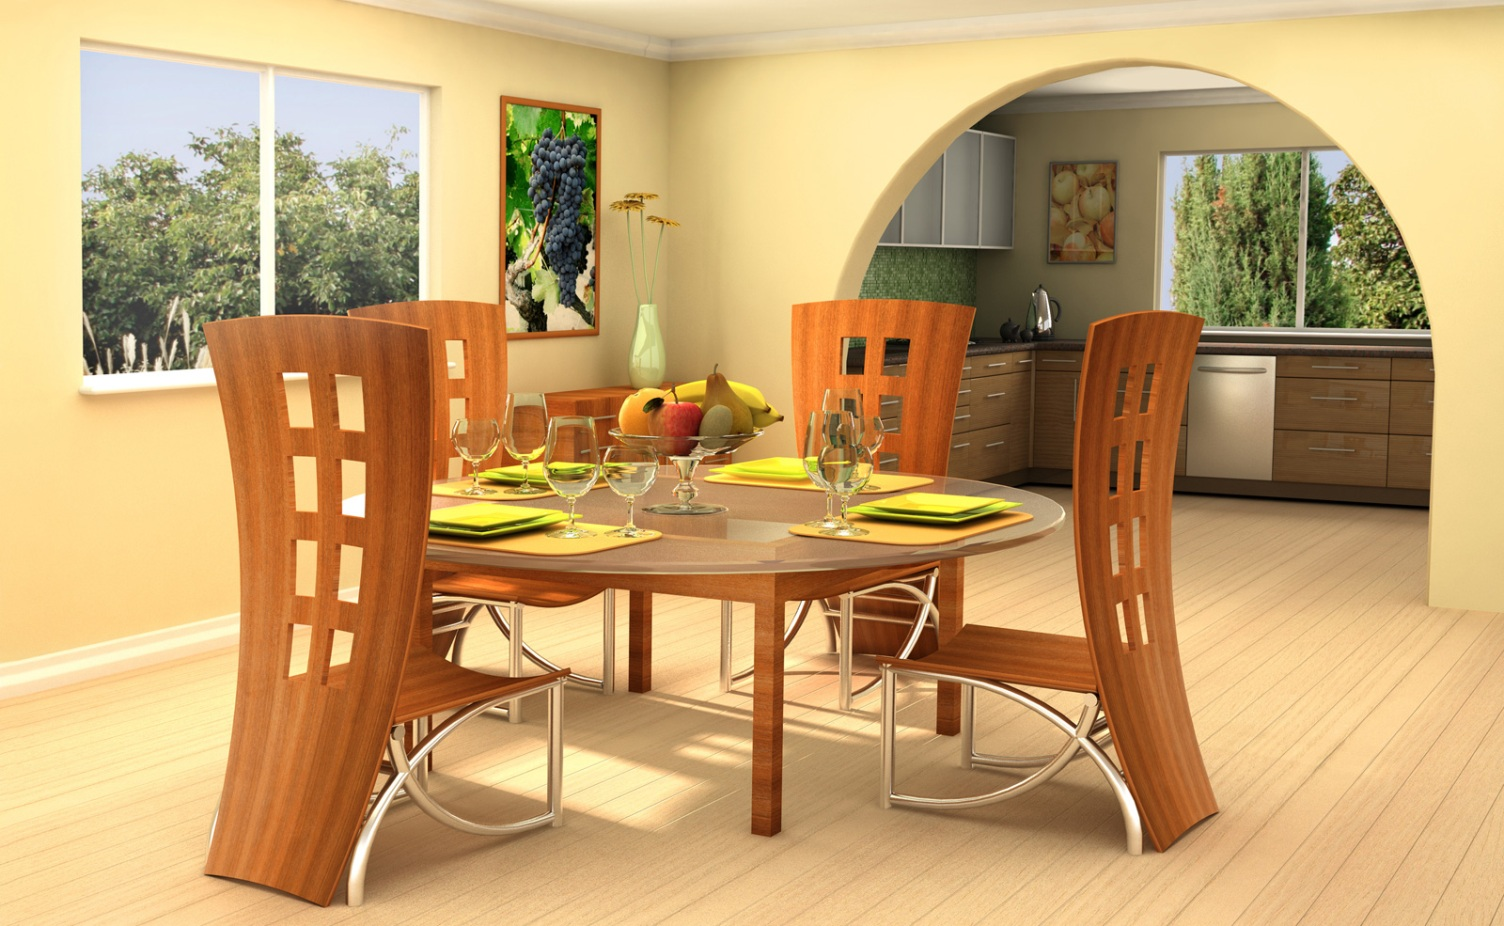 Go Creative And Pick Unique Dining Room Table And Chairs From 2017 Market Dining Chairs